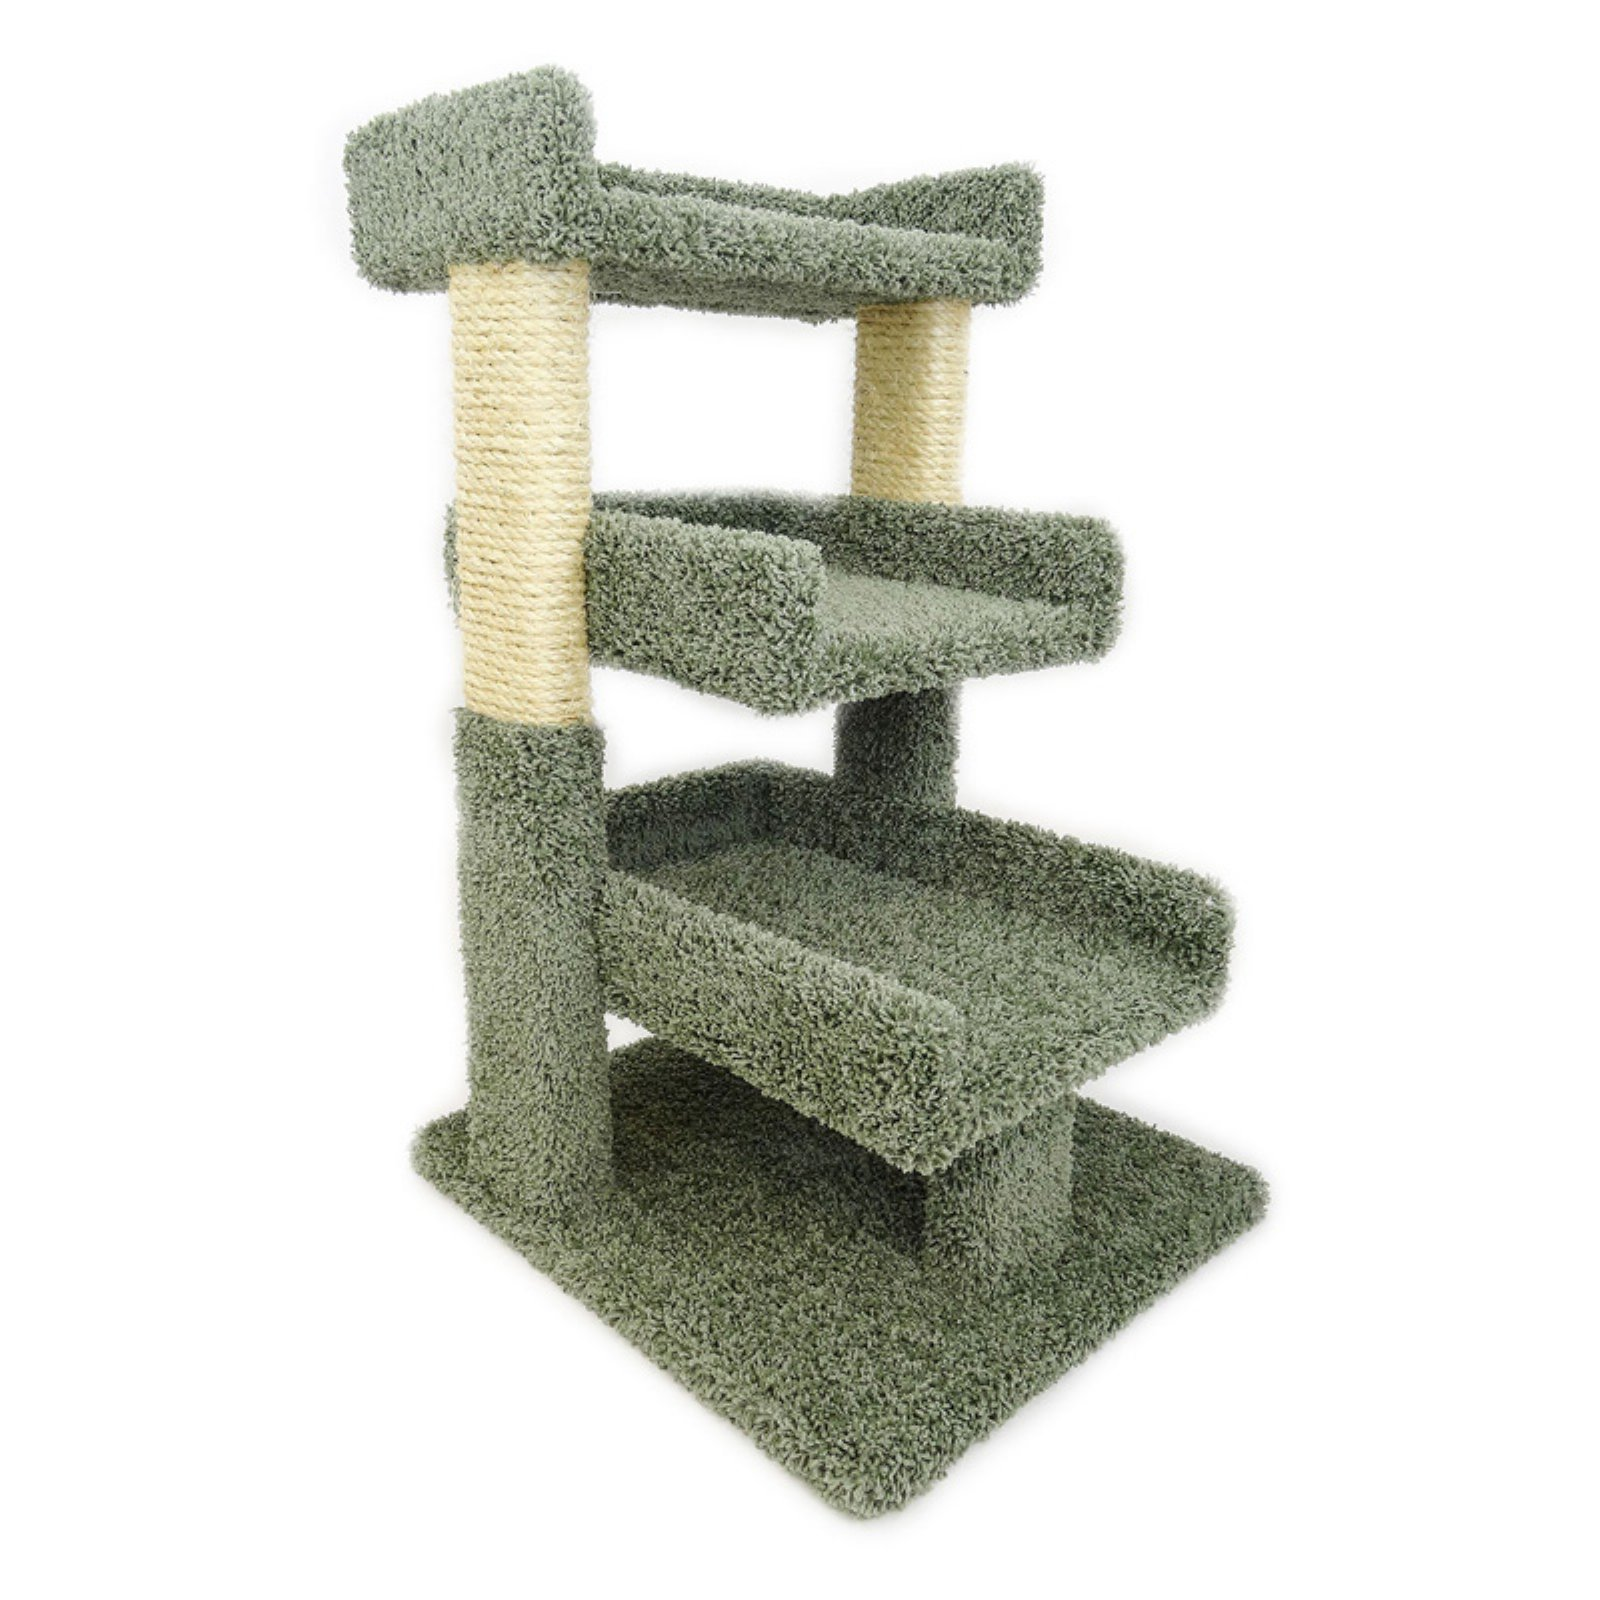 New Cat Condos Triple-Level Cat Perch 33 in., Green